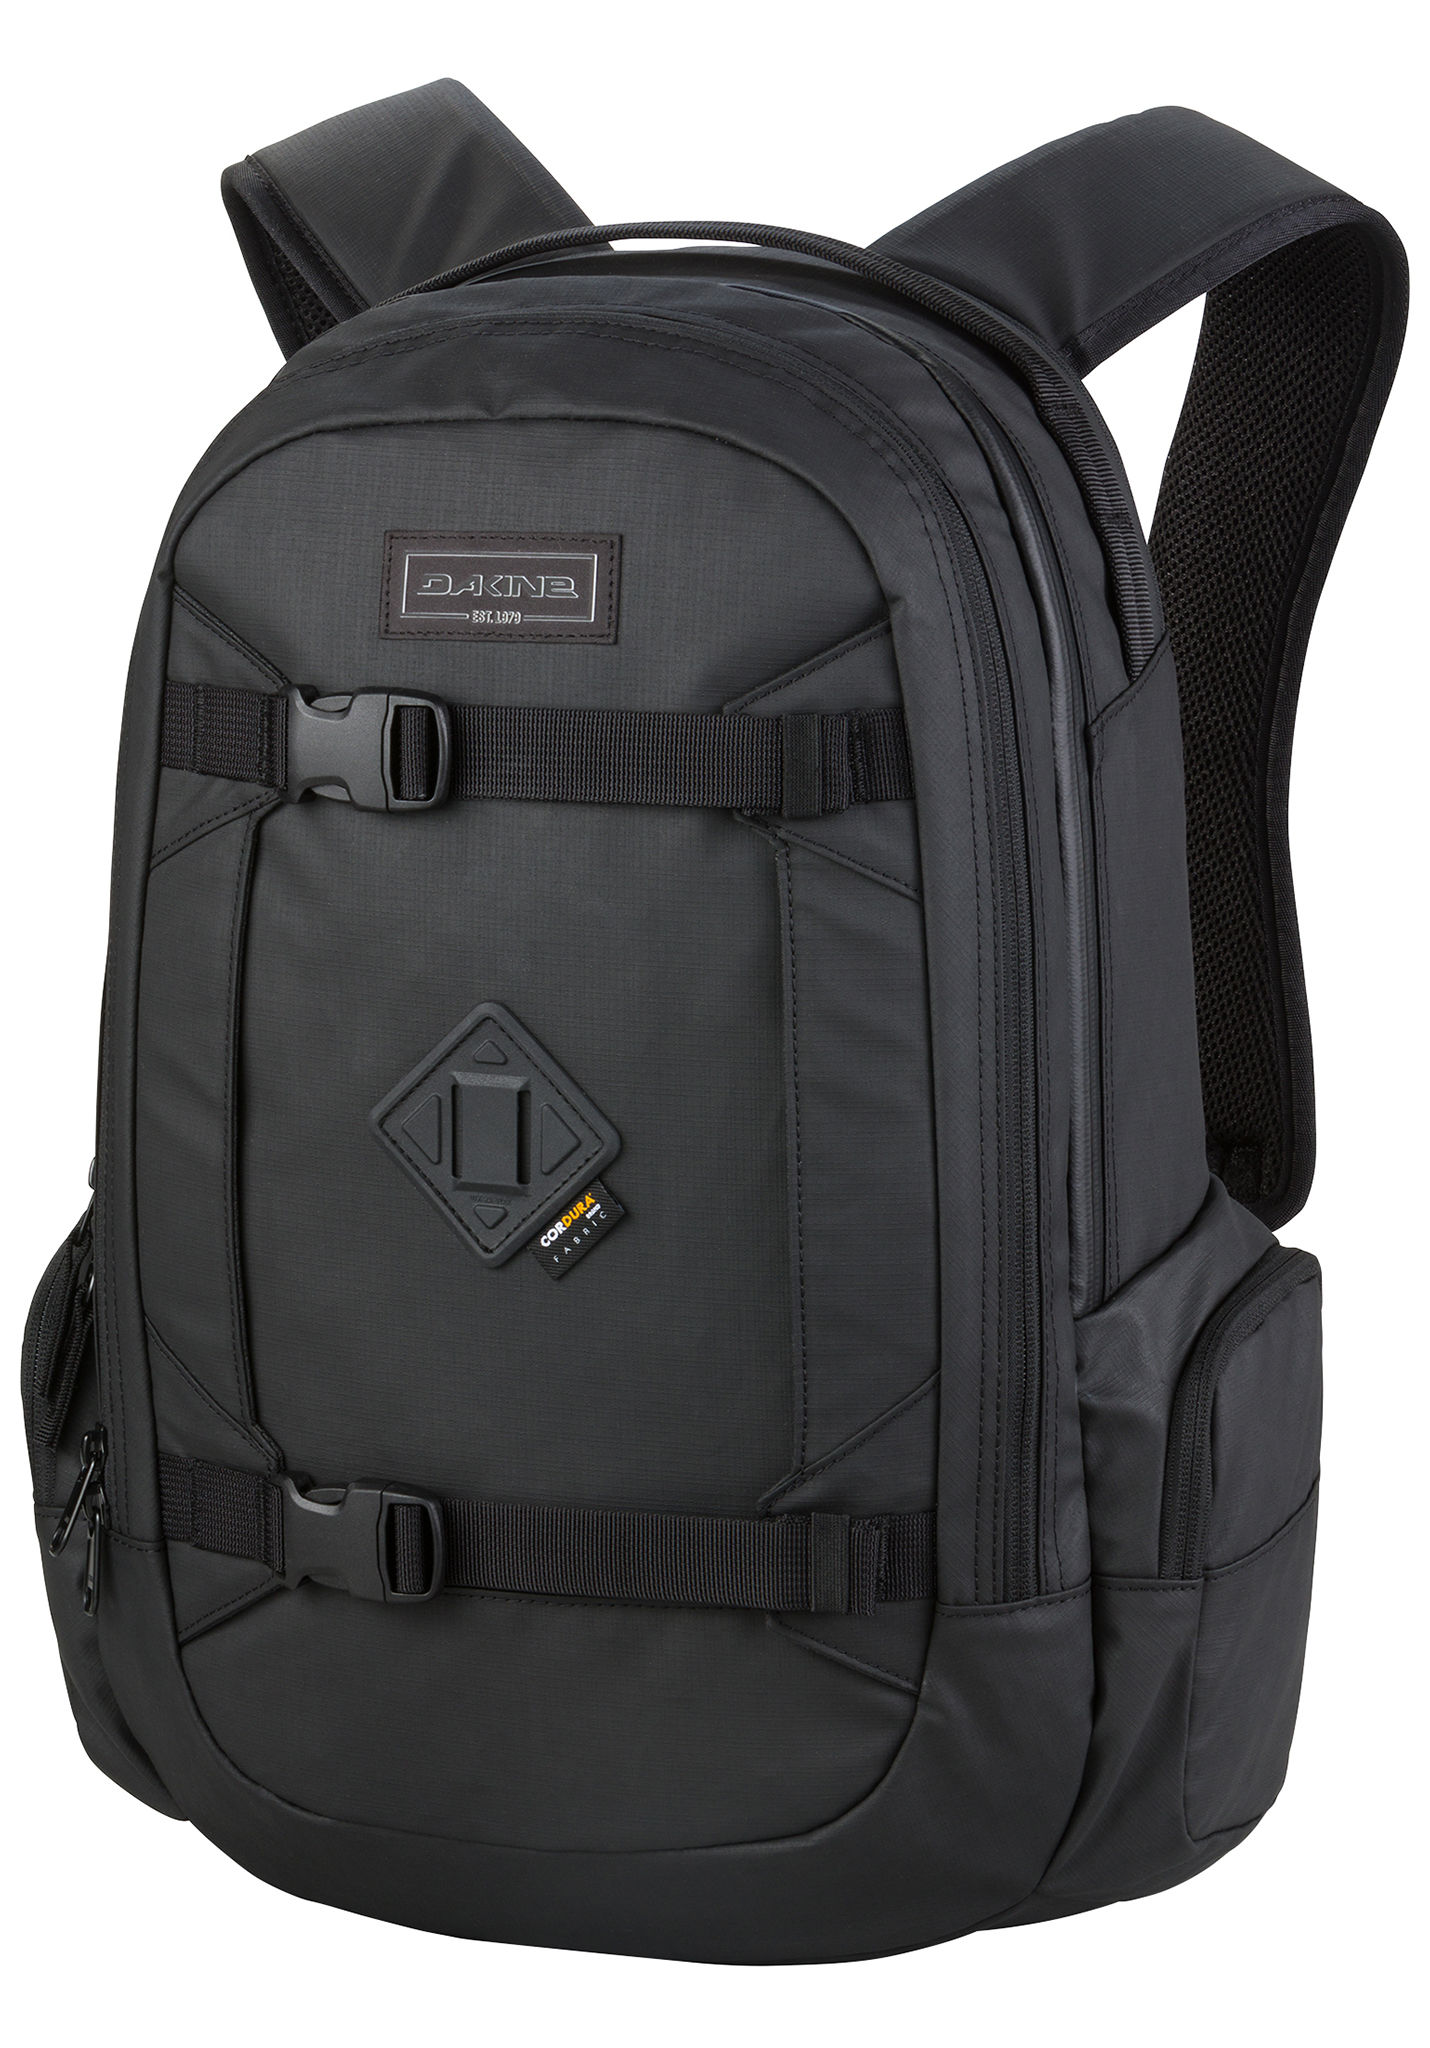 69cf6c5513521 Black Dakine Backpacks - Dakine Luggage - eBags.com